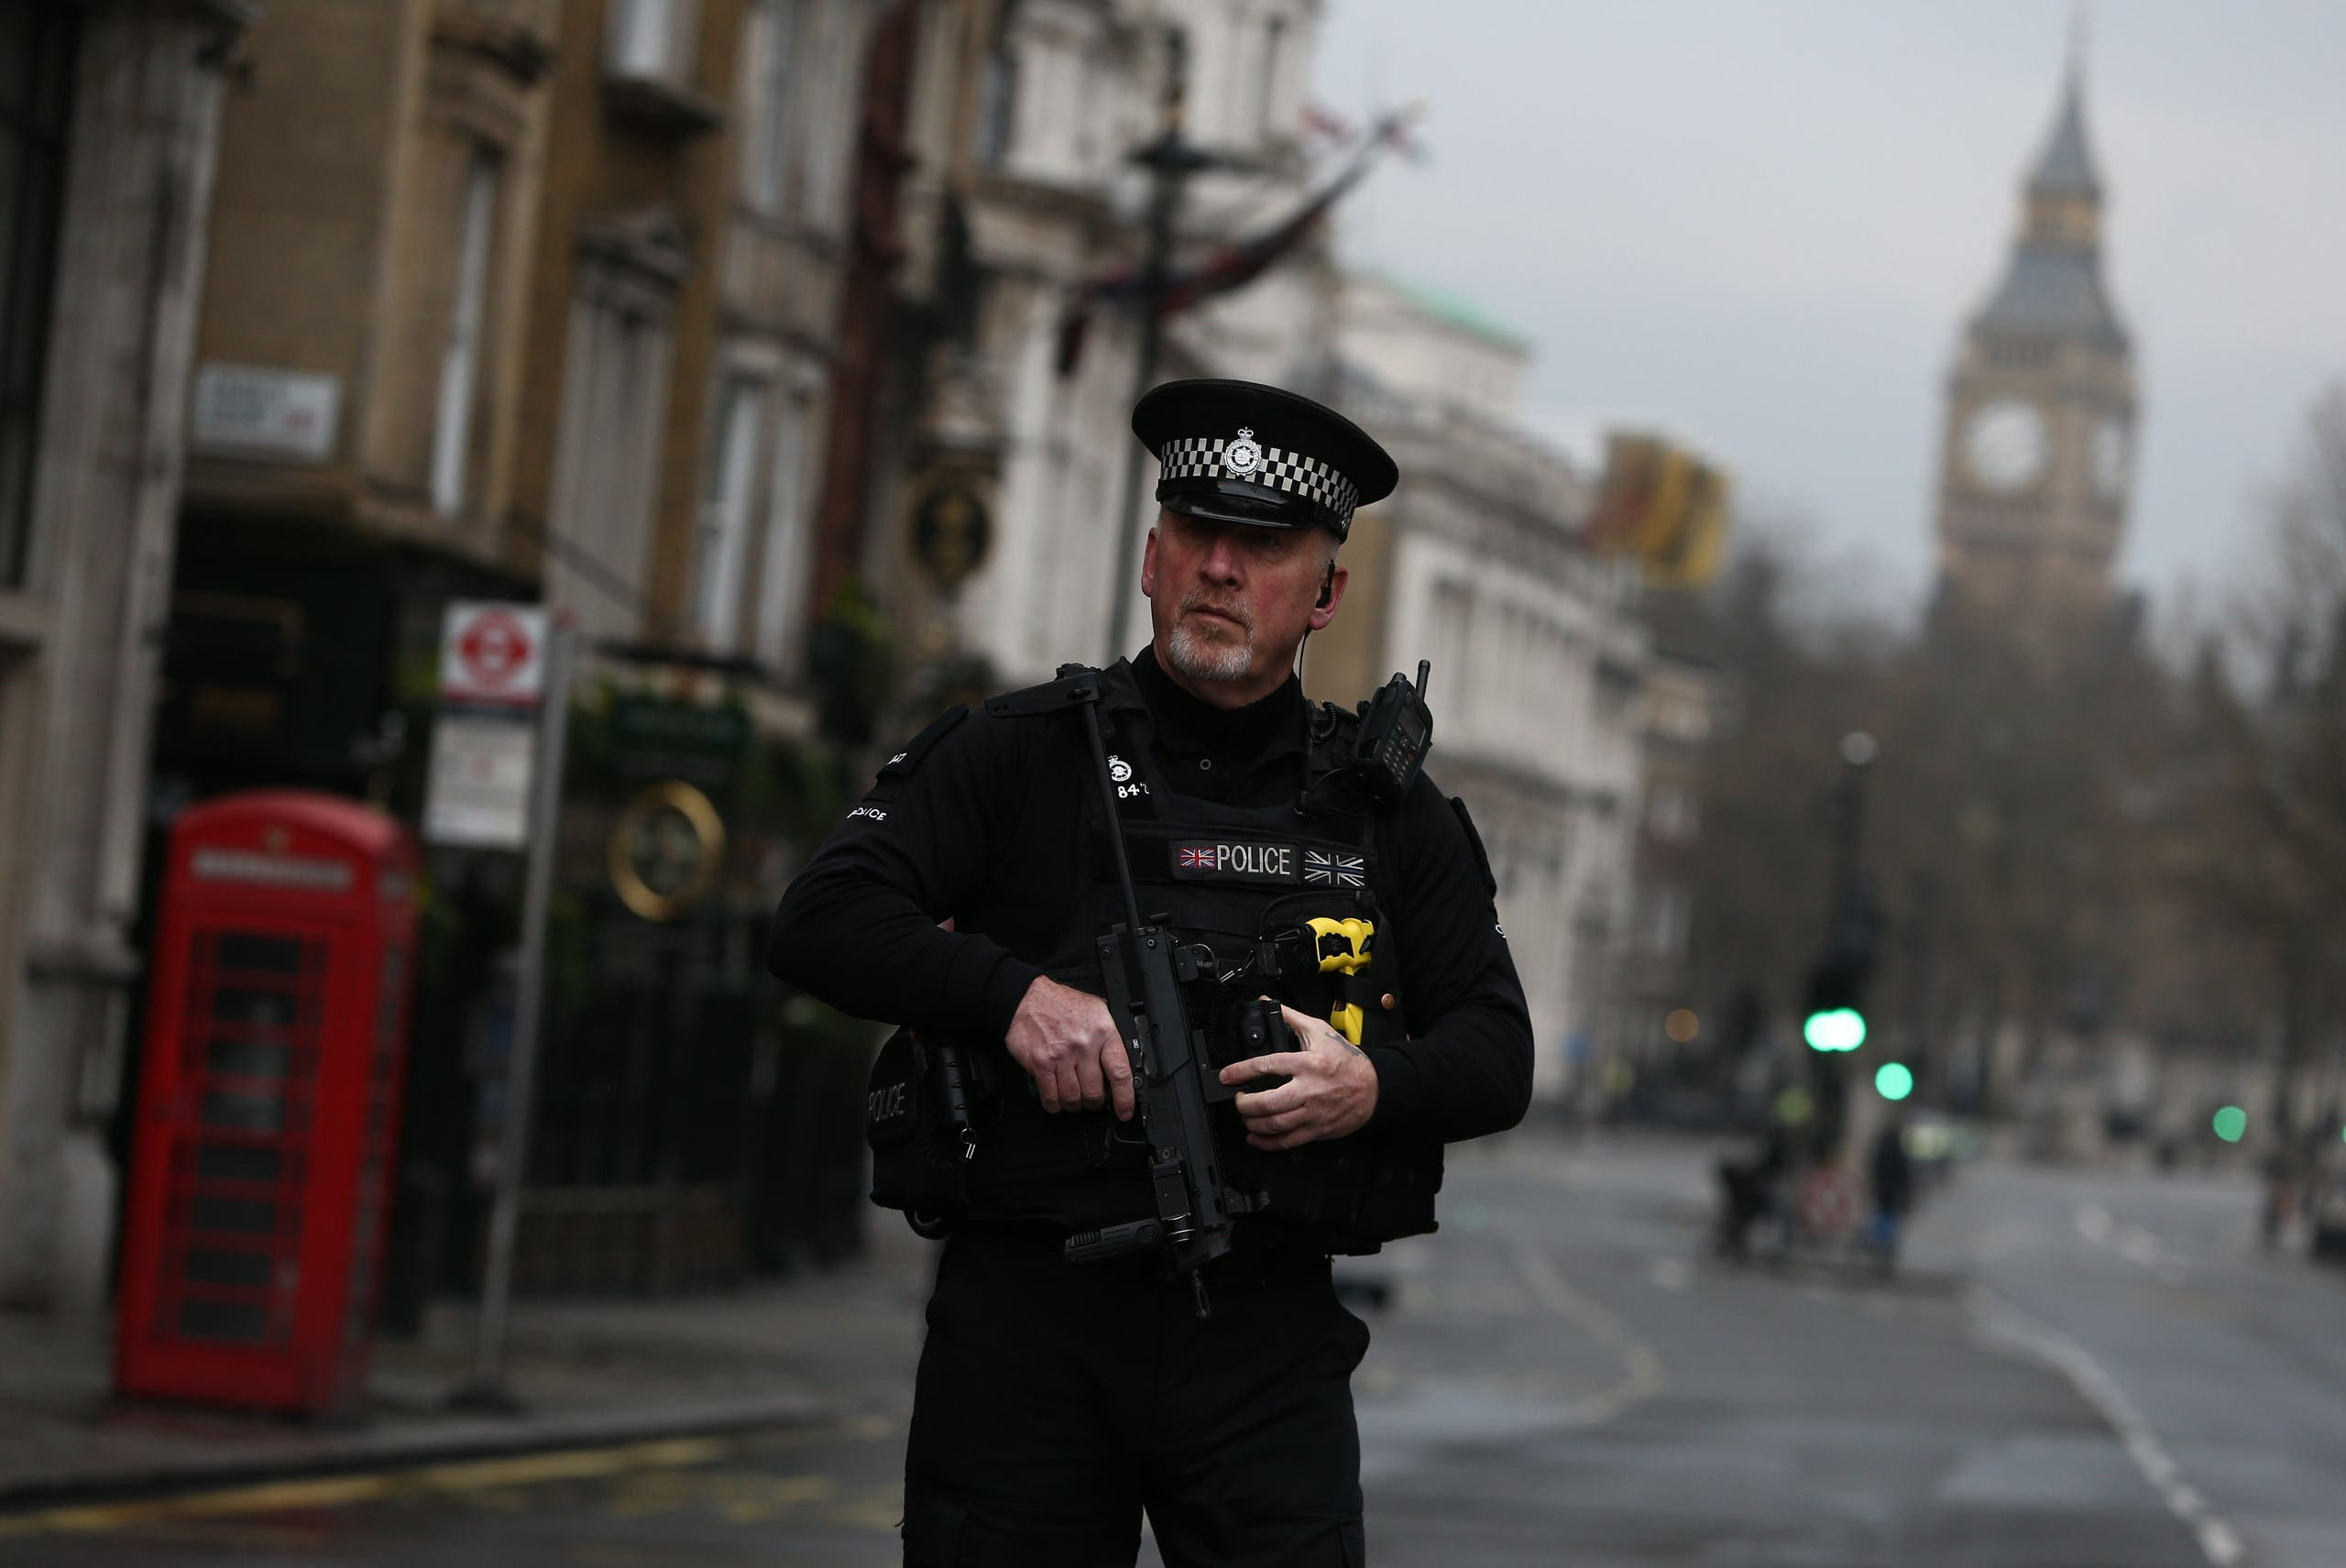 An armed police officer stands on Whitehall the morning after an attack by a man driving a car and weilding a knife left five people dead and dozens injured, in London, Britain, March 23, 2017.(Reuters )